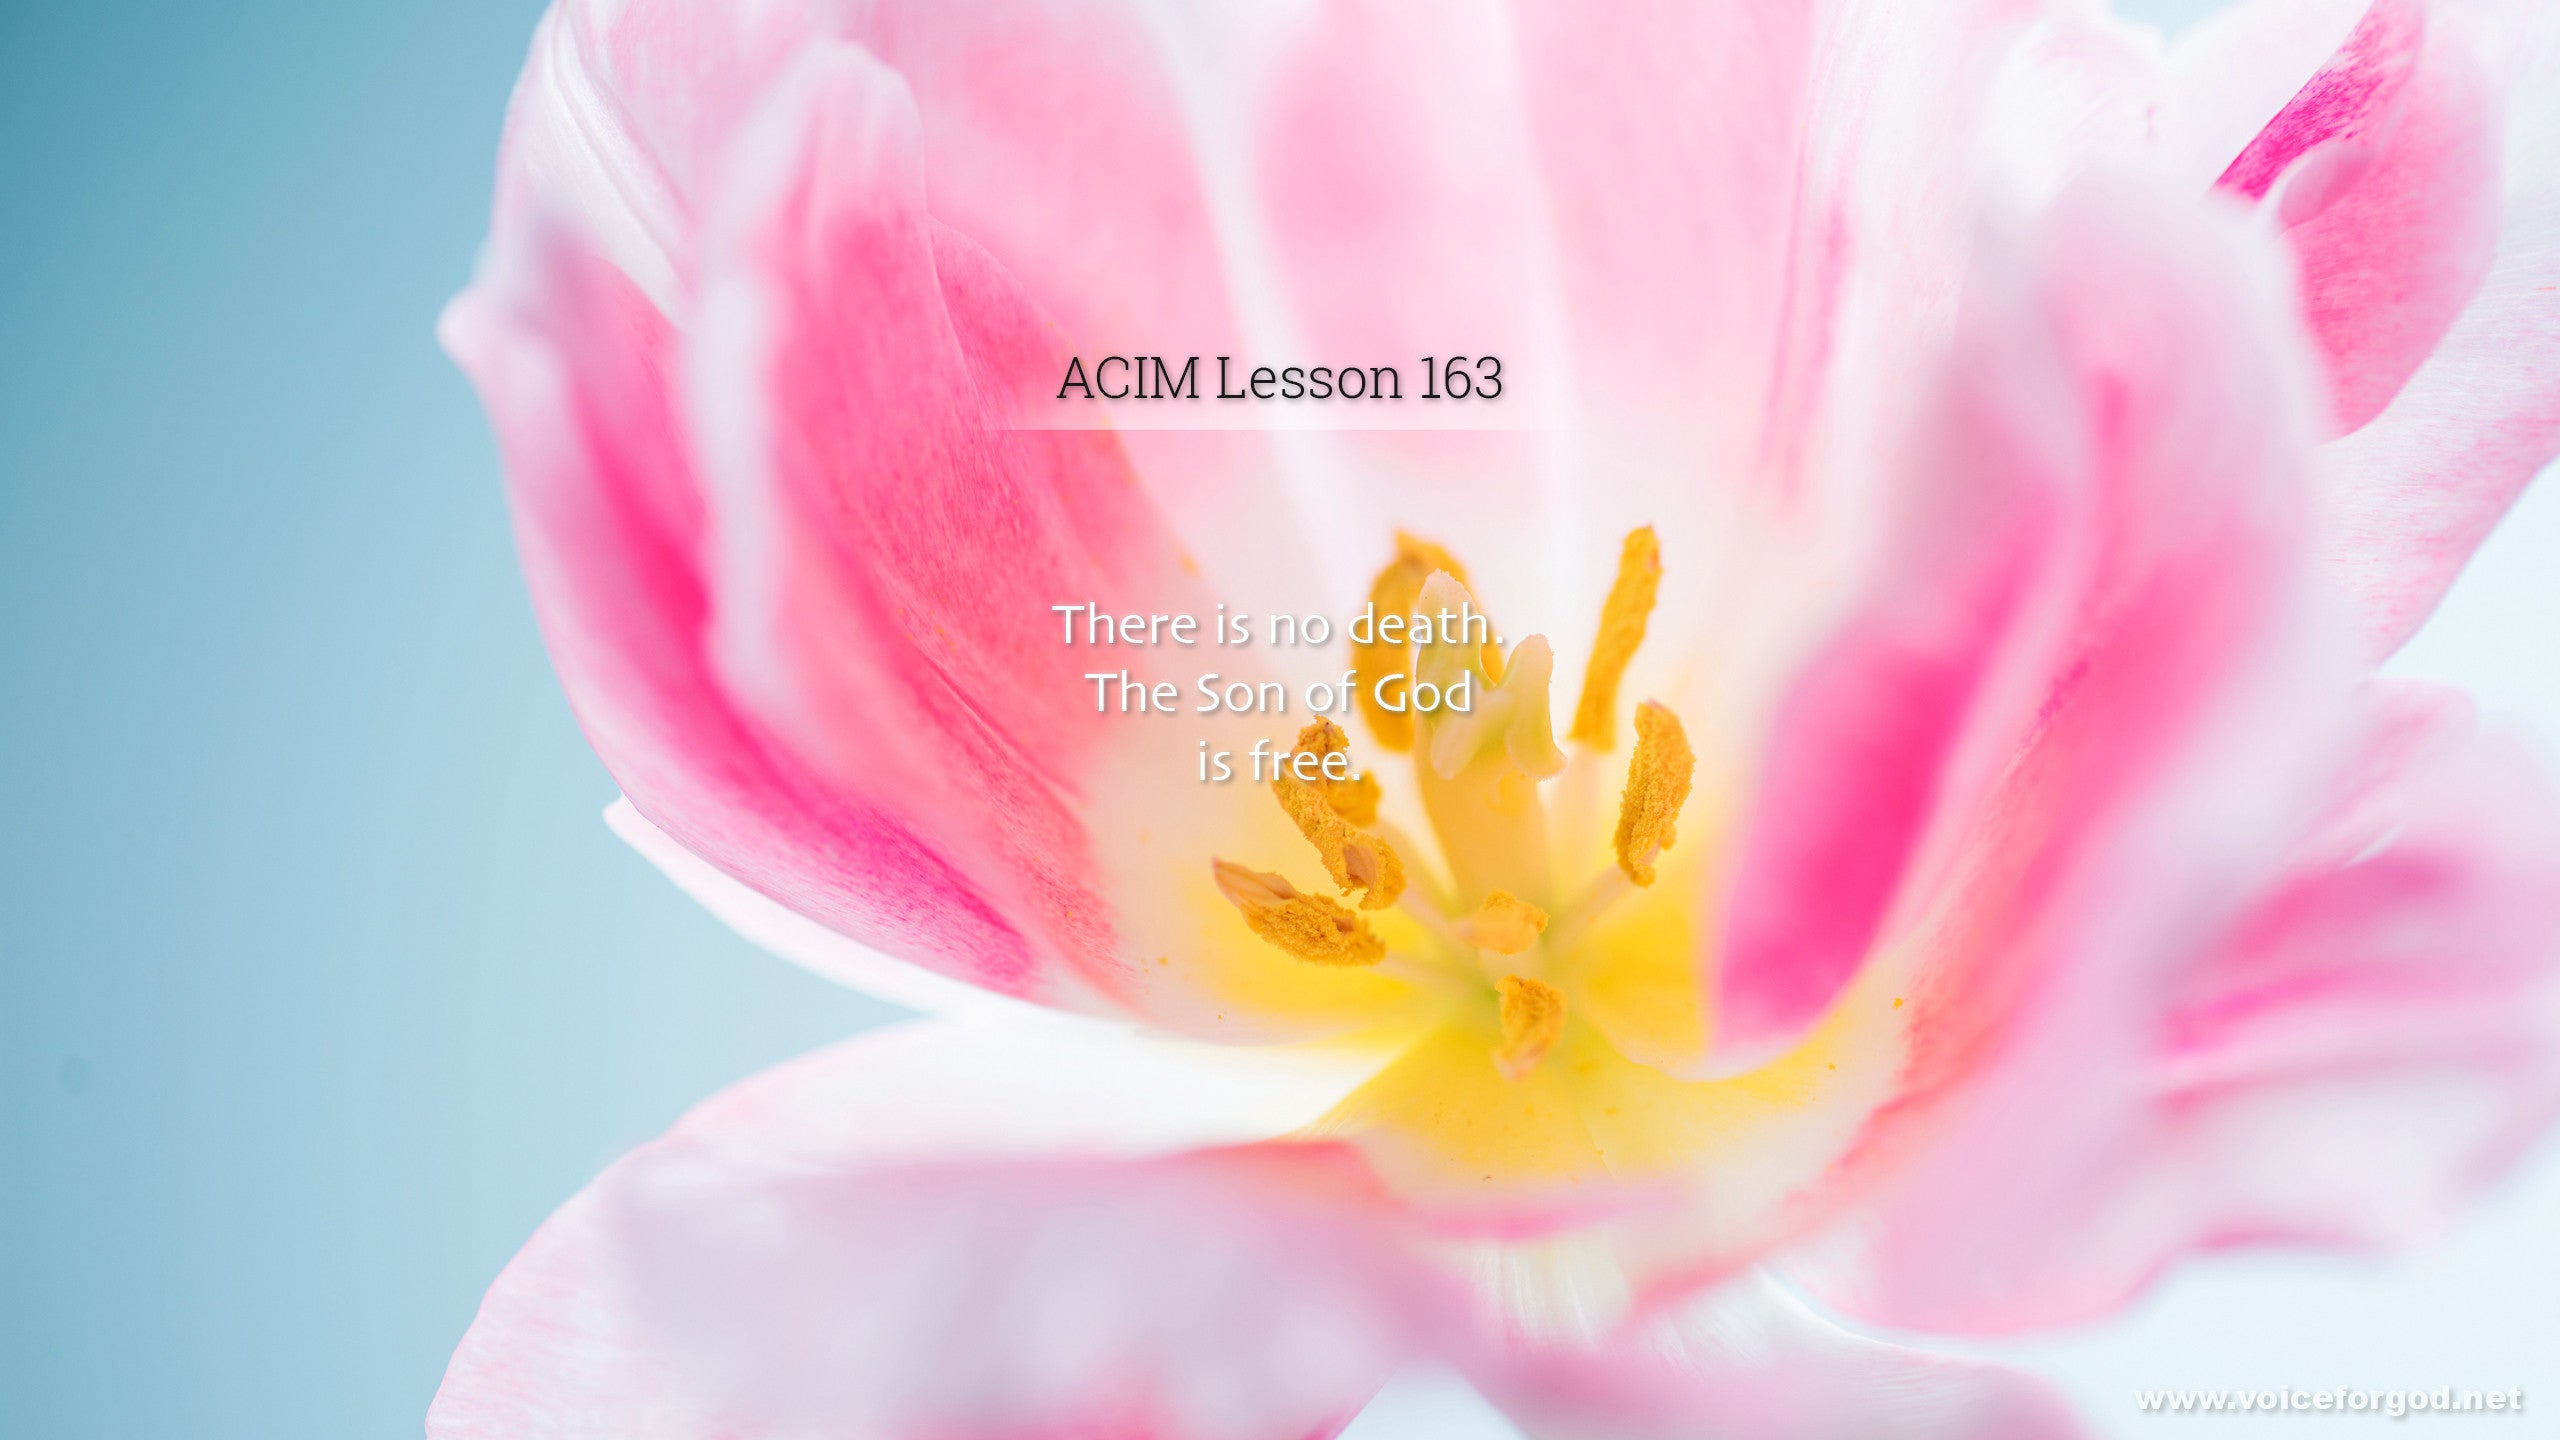 ACIM Lesson 163 - A Course in Miracles Workbook Lesson 163